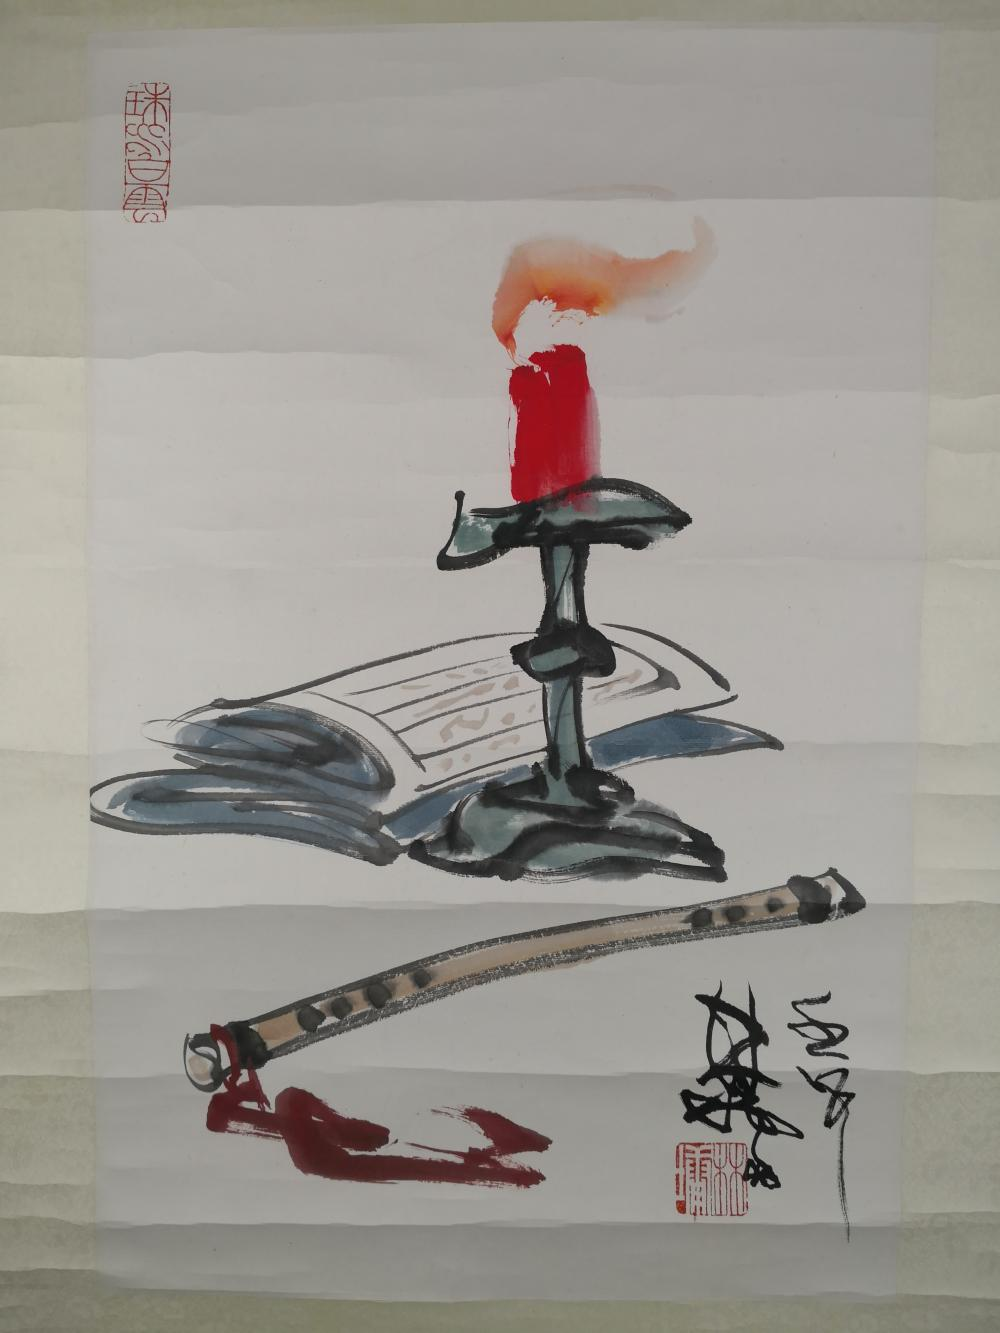 A CHINESE PAINTING BY LIN YONG